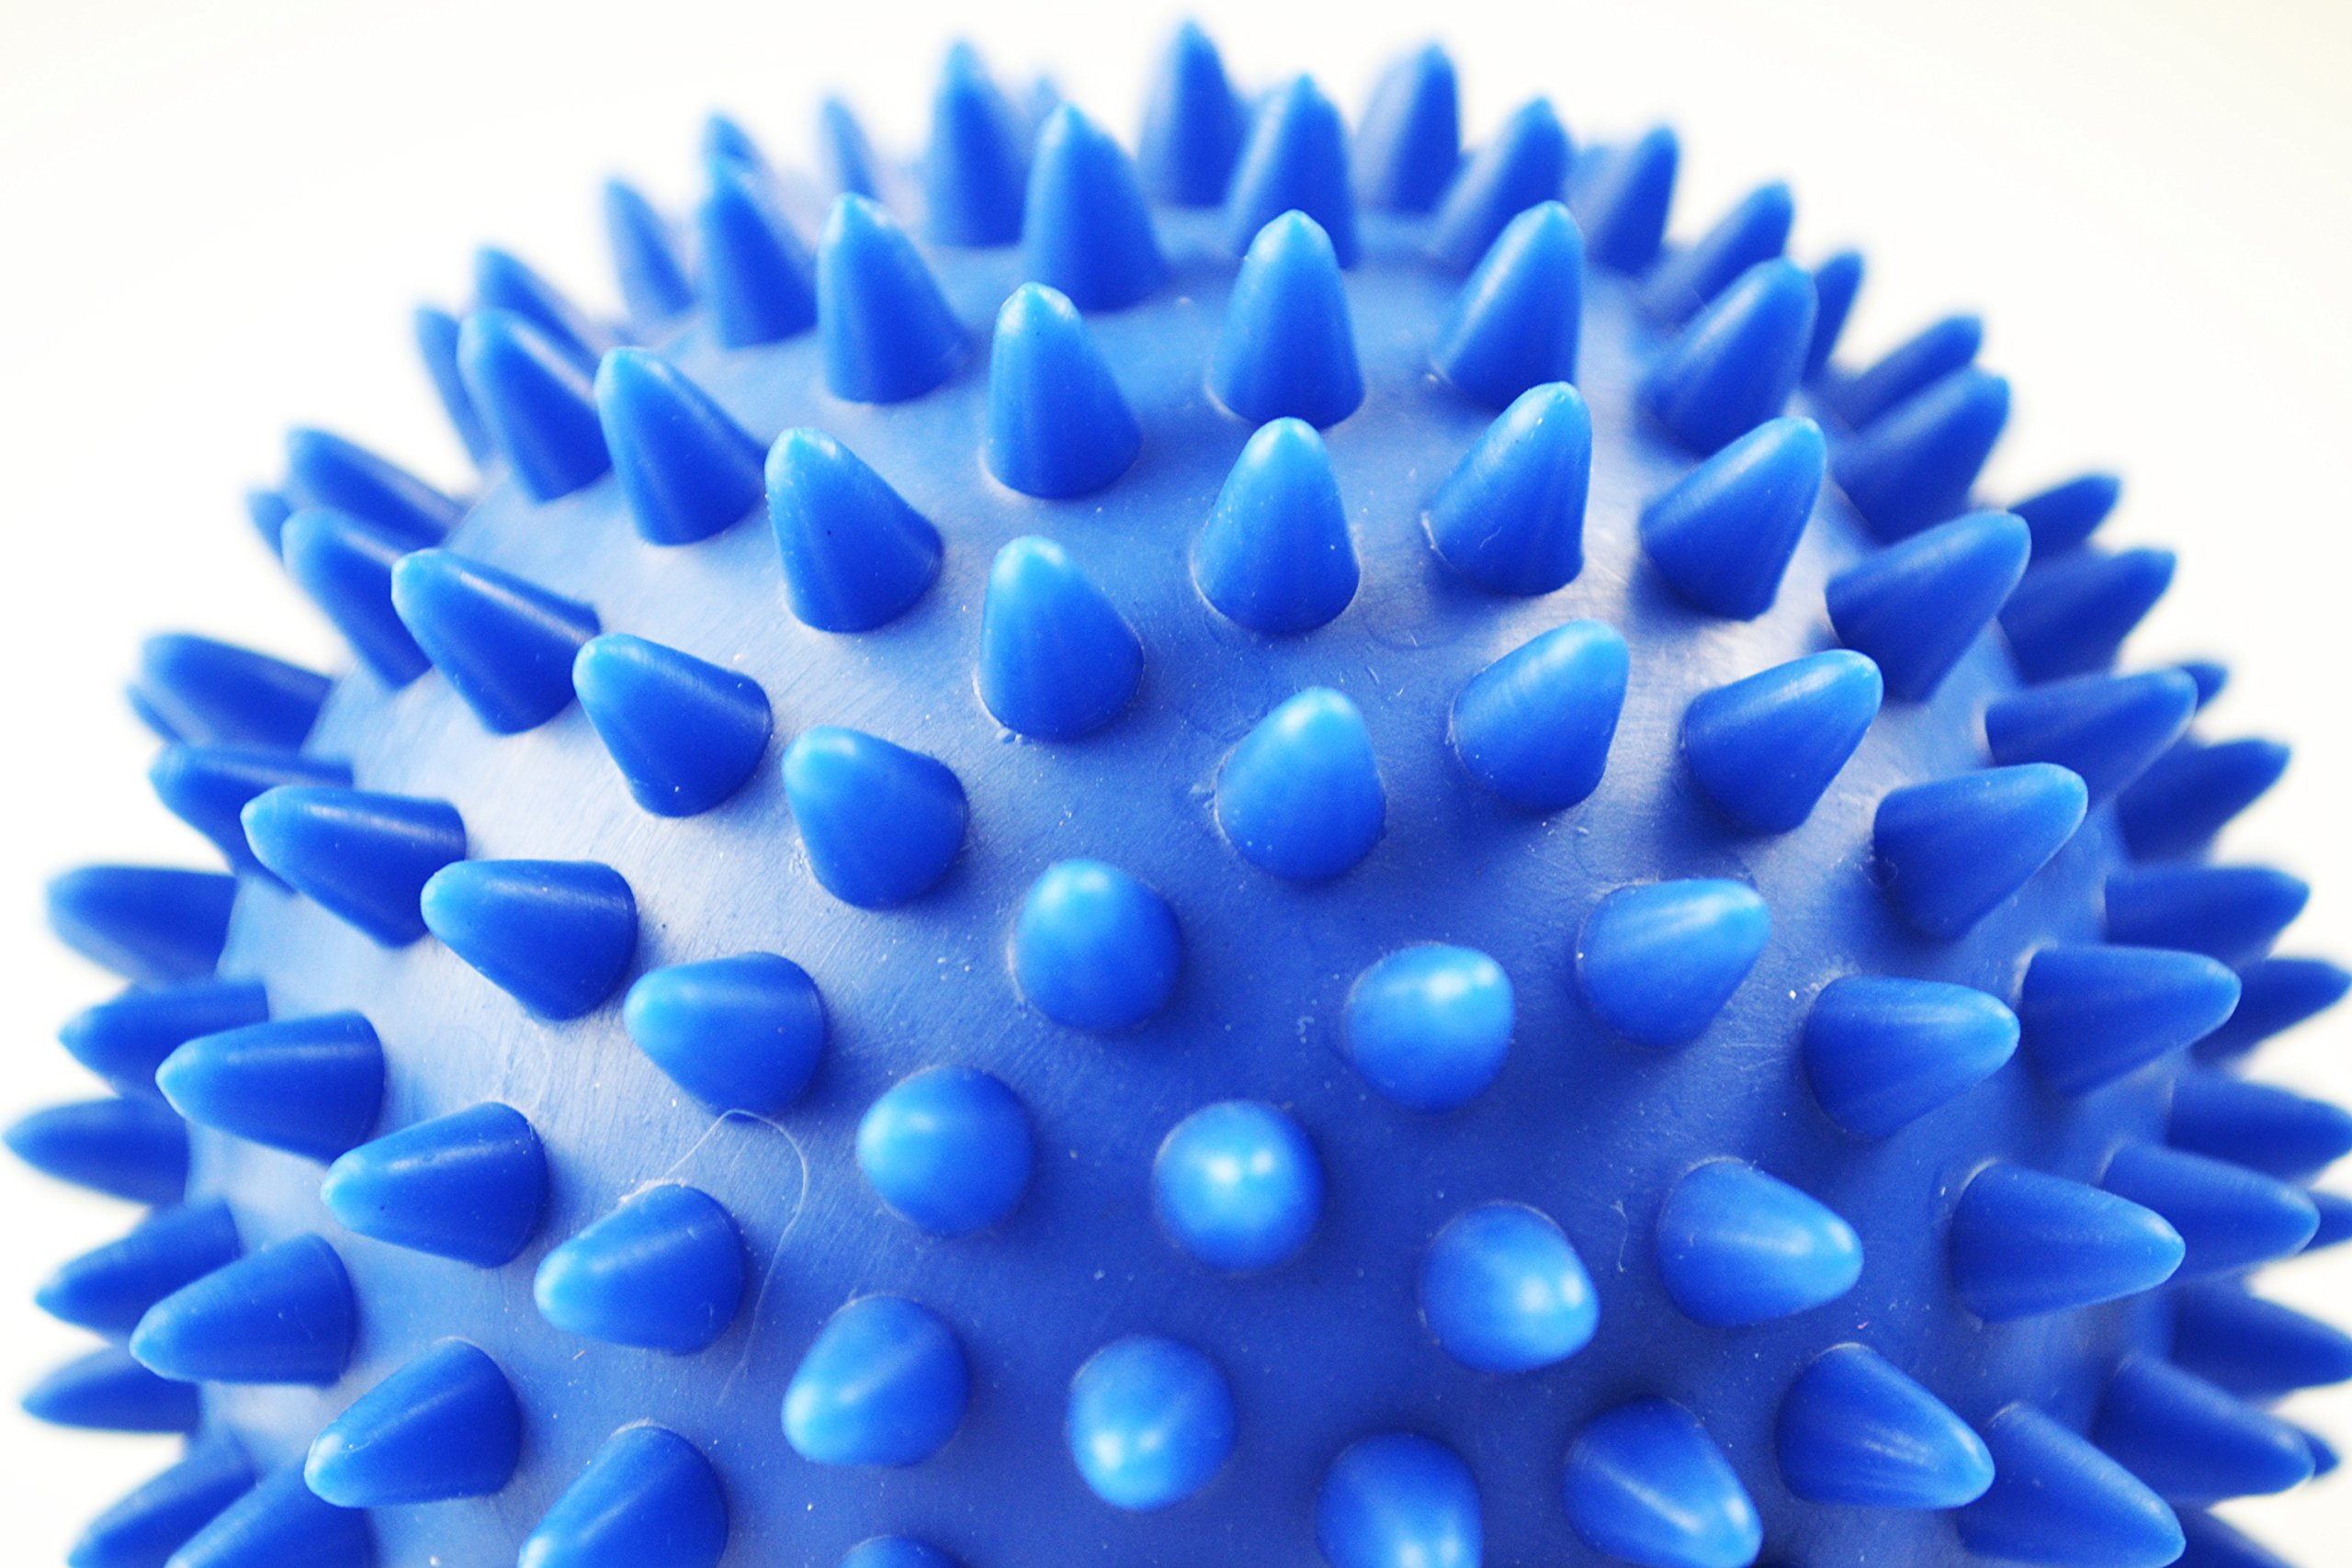 Micogo 9cm High Density Spiky Massage Ball for Tension Relief and Muscle Release , pack of 2